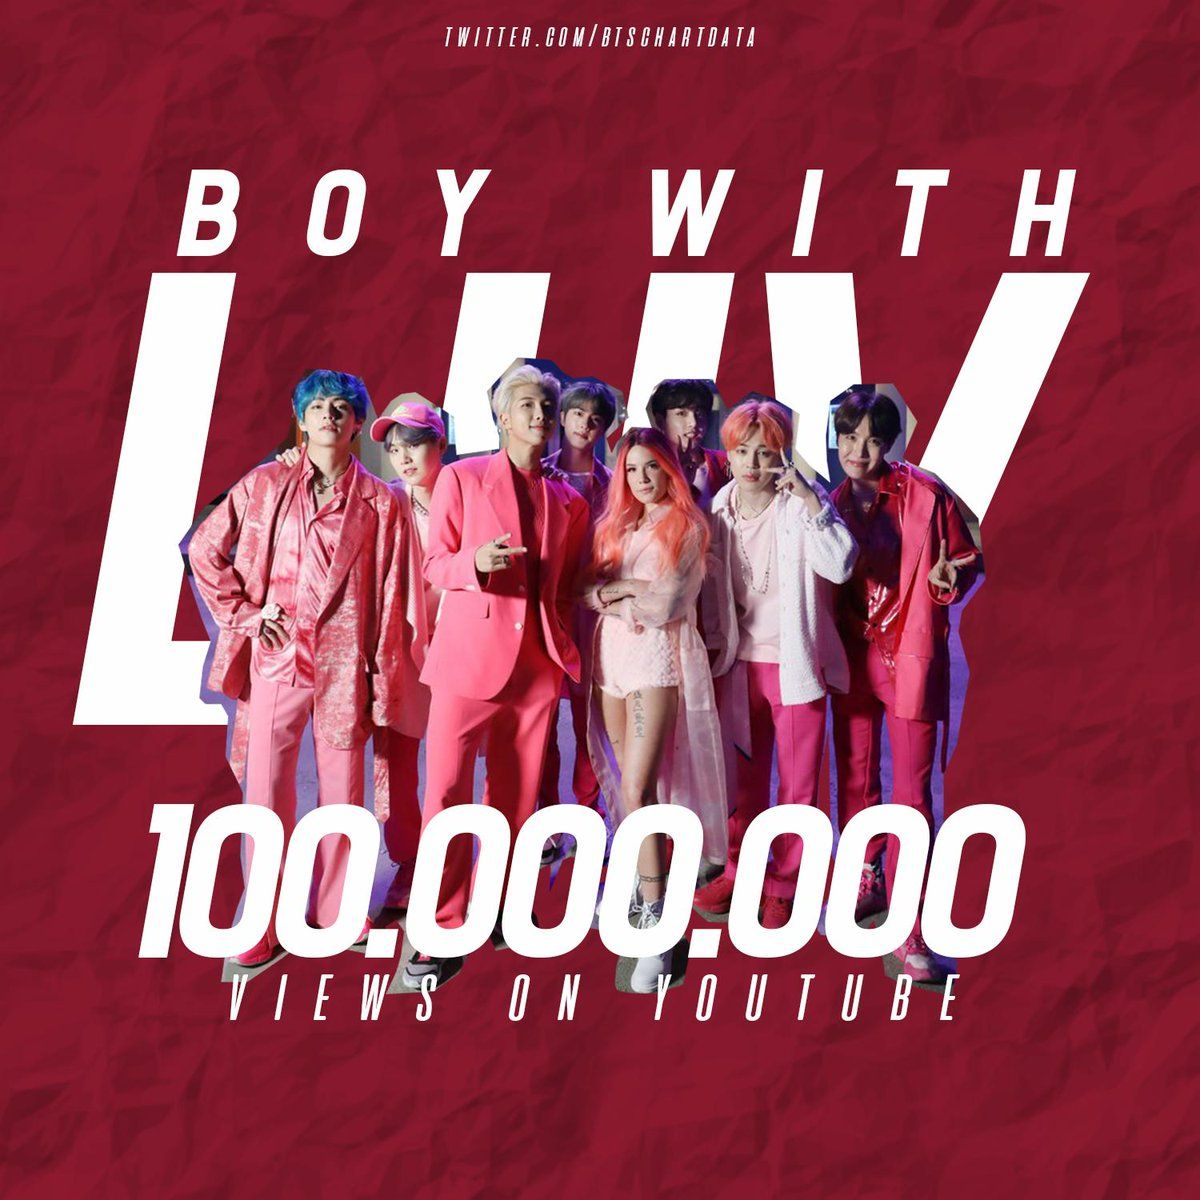 Boy With Luv' M/V by BTS ft  Halsey surpassed 100M views on